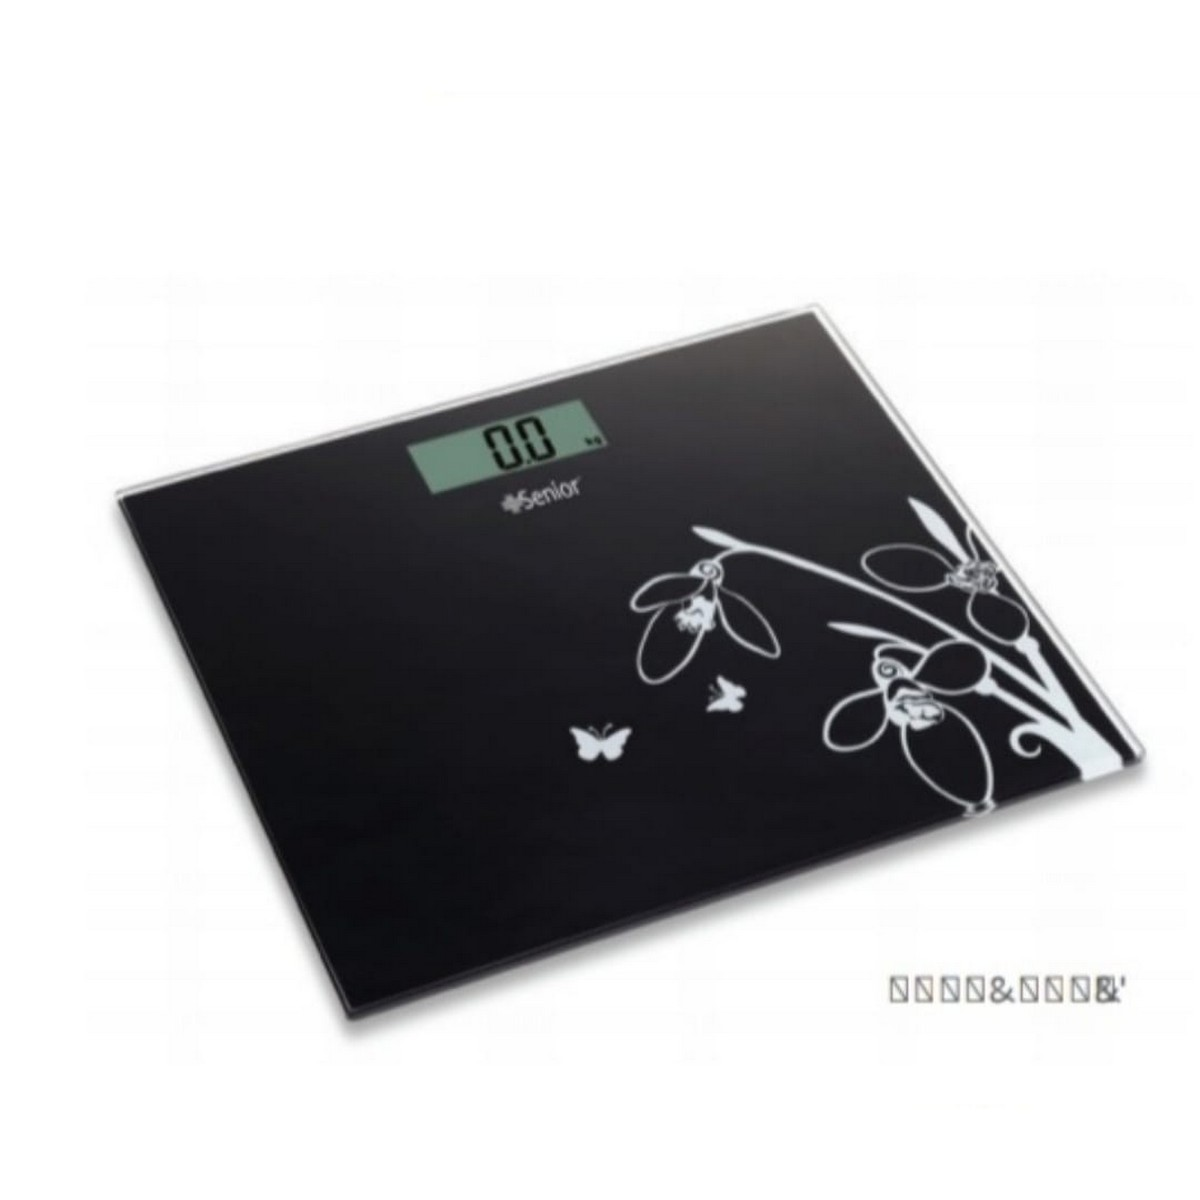 Senior 100% Accurate Strong Glass Electronic Digital Body Weight Machine Digital Body Weight Scale Digital Personal Body Weighing Machine Digital Personal Body Weighing Scale Digital Bathroom Scale Digital Bath Scale Portable Weight Scale Machine